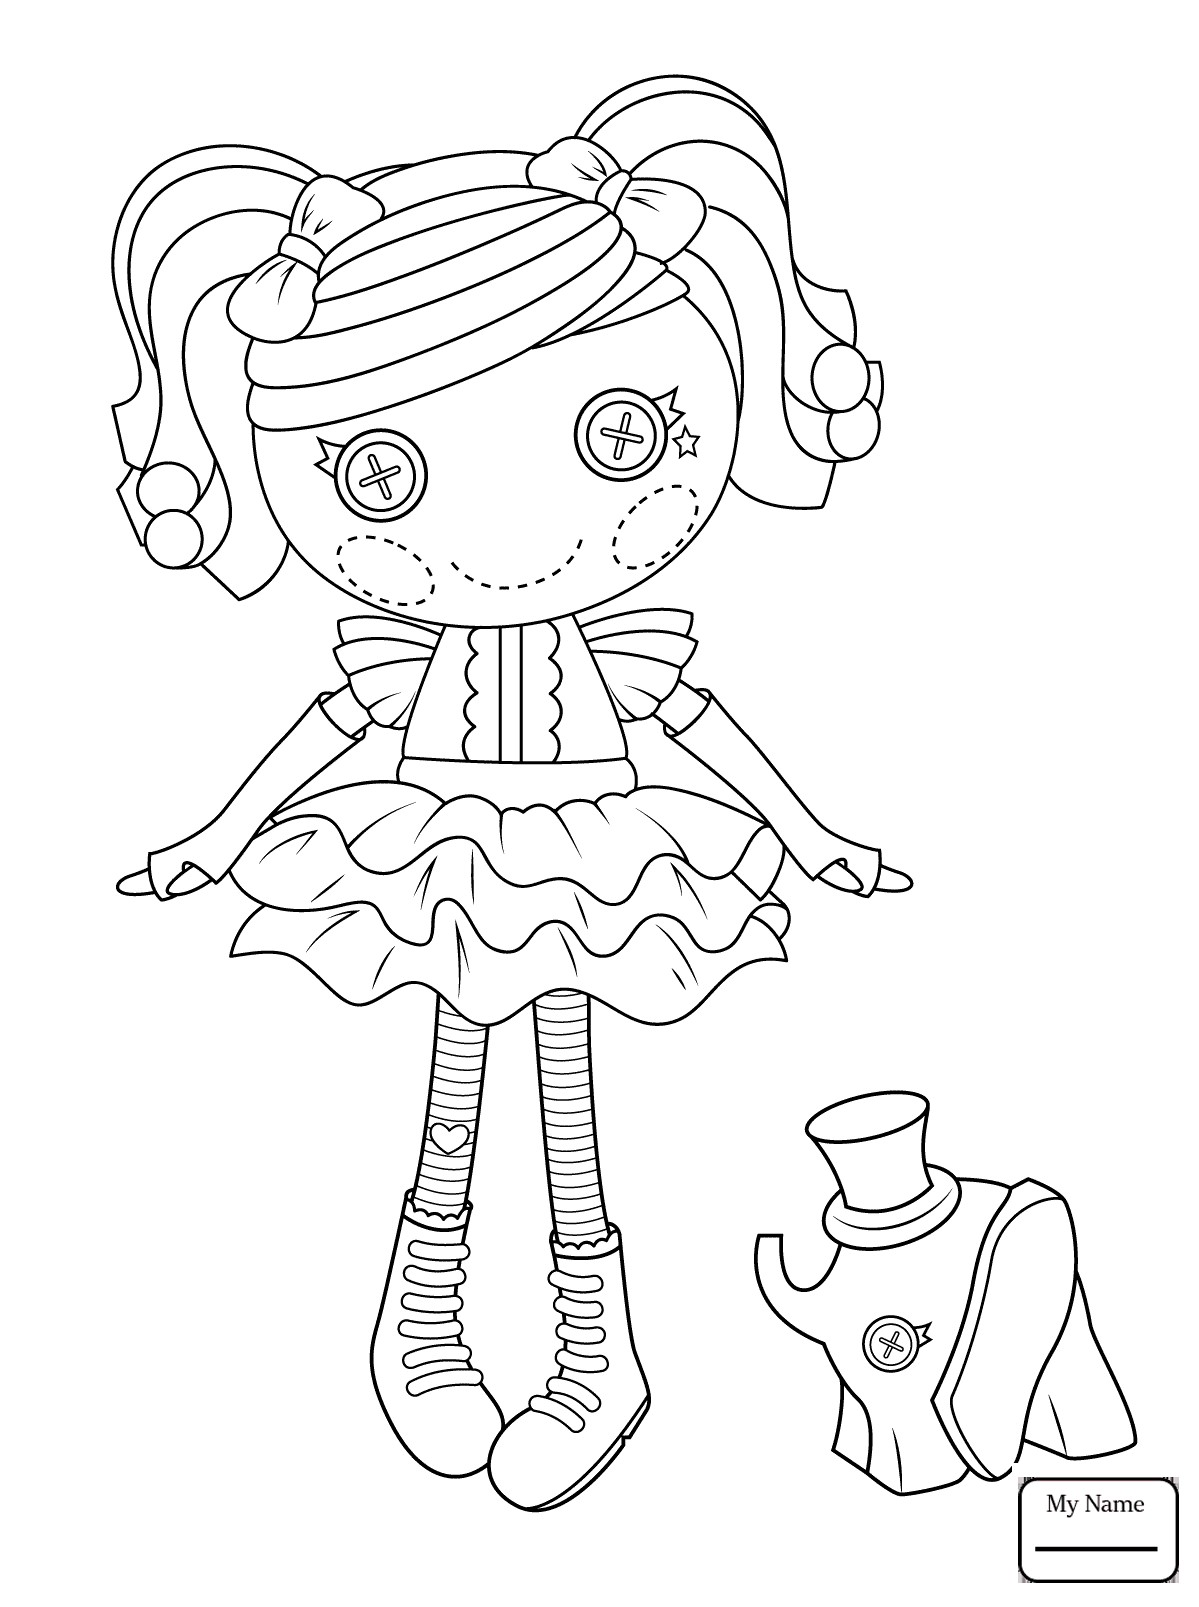 dolls colouring pages free printable paper doll coloring pages for kids dolls colouring pages 1 1